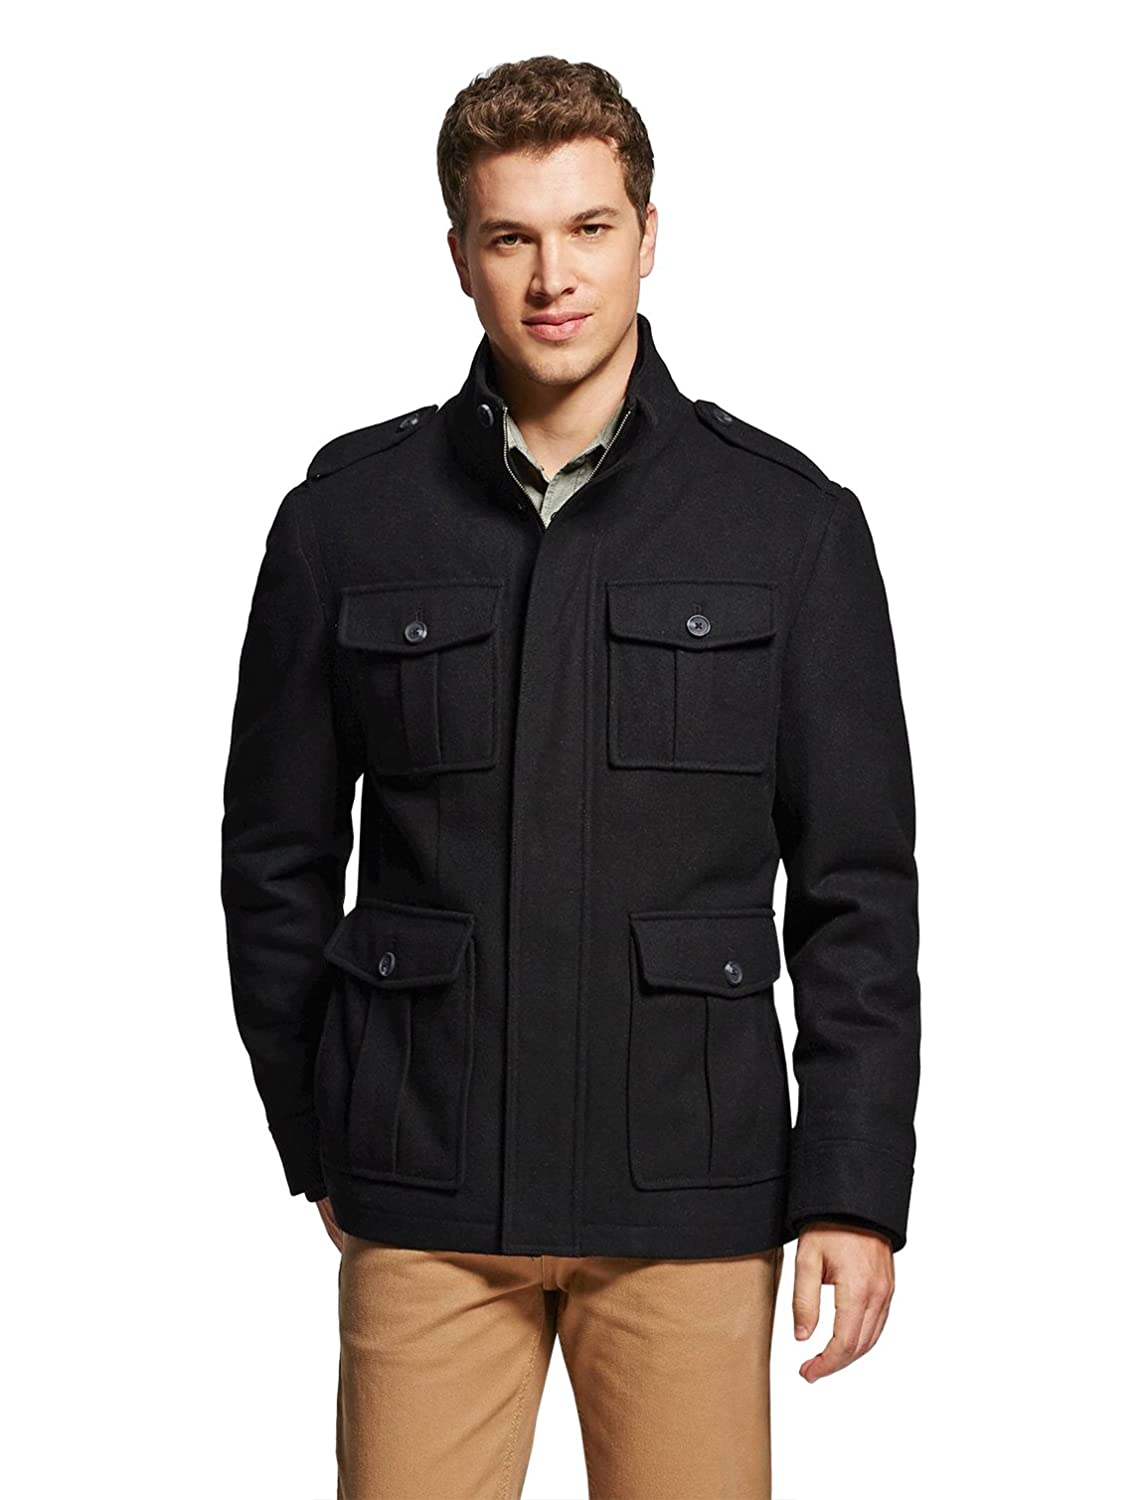 2f8d8b4d362 7Encounter Men s Wool Four Pocket Jacket at Amazon Men s Clothing store